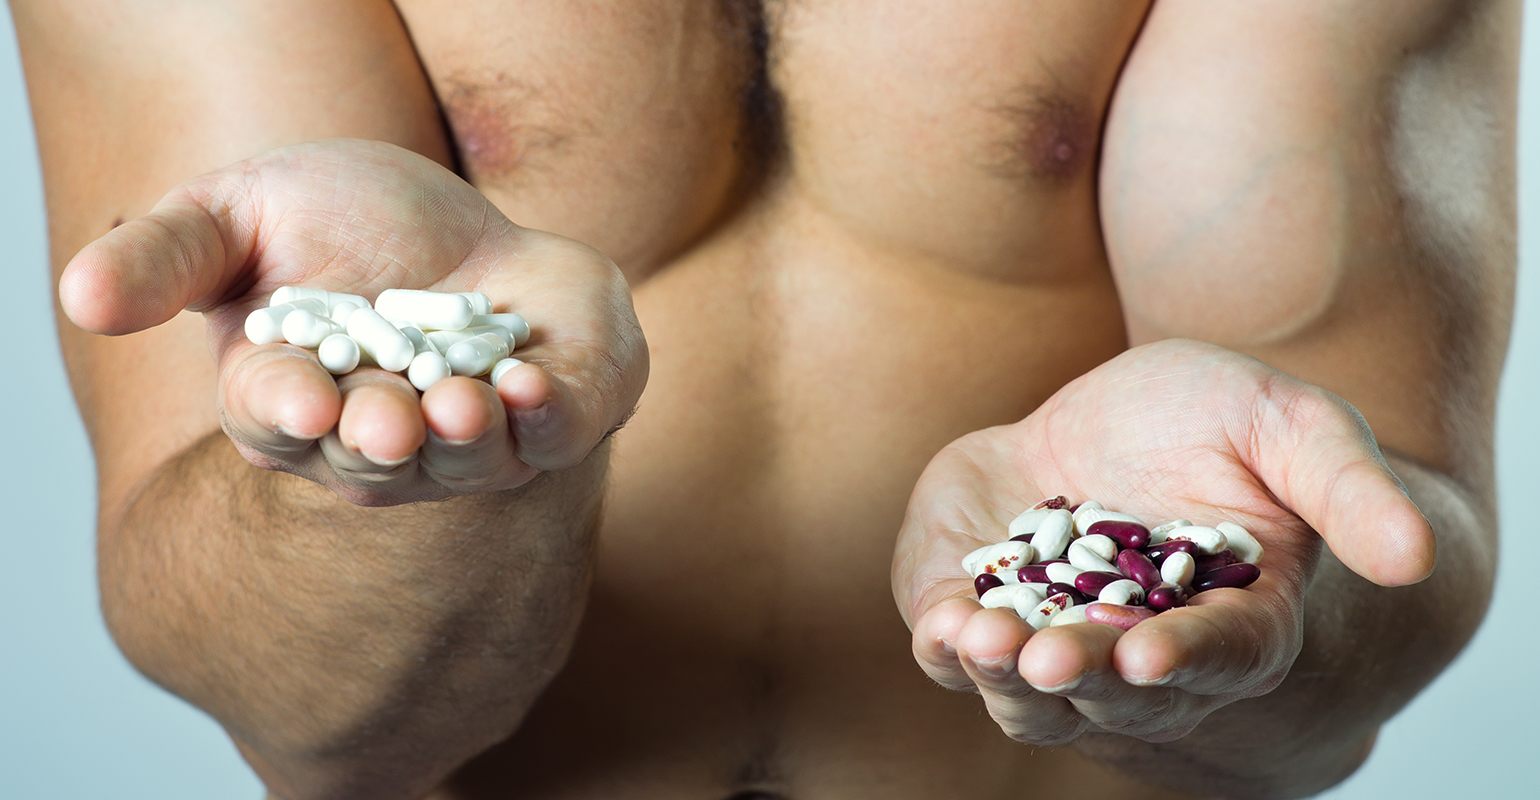 """Male Enhancement Supplement """"Night Bullet"""" is Recalled 